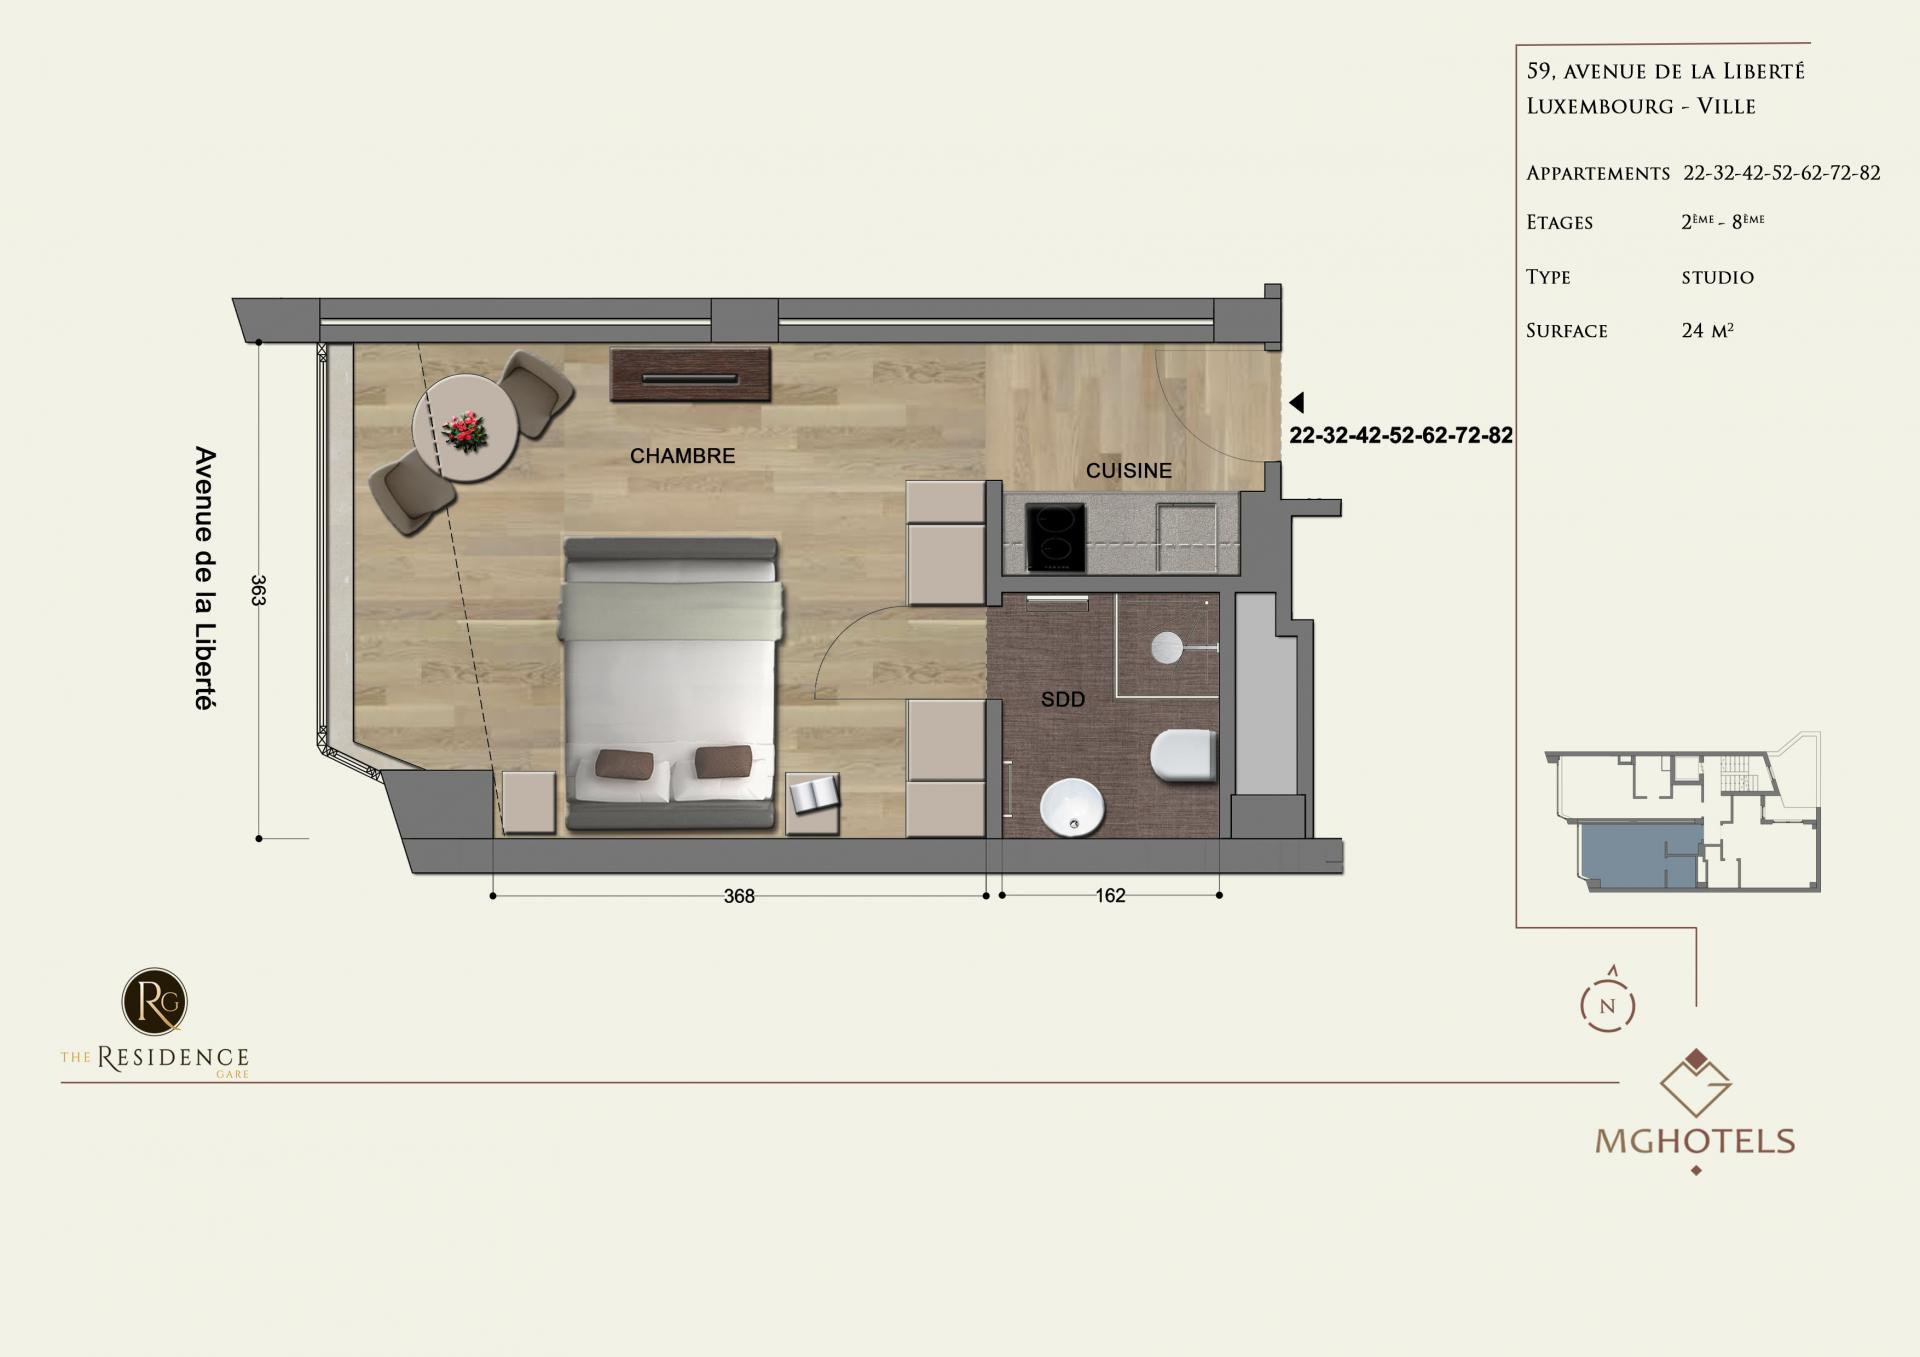 Floor plan 4 at The Residence Gare, Gare, Luxembourg